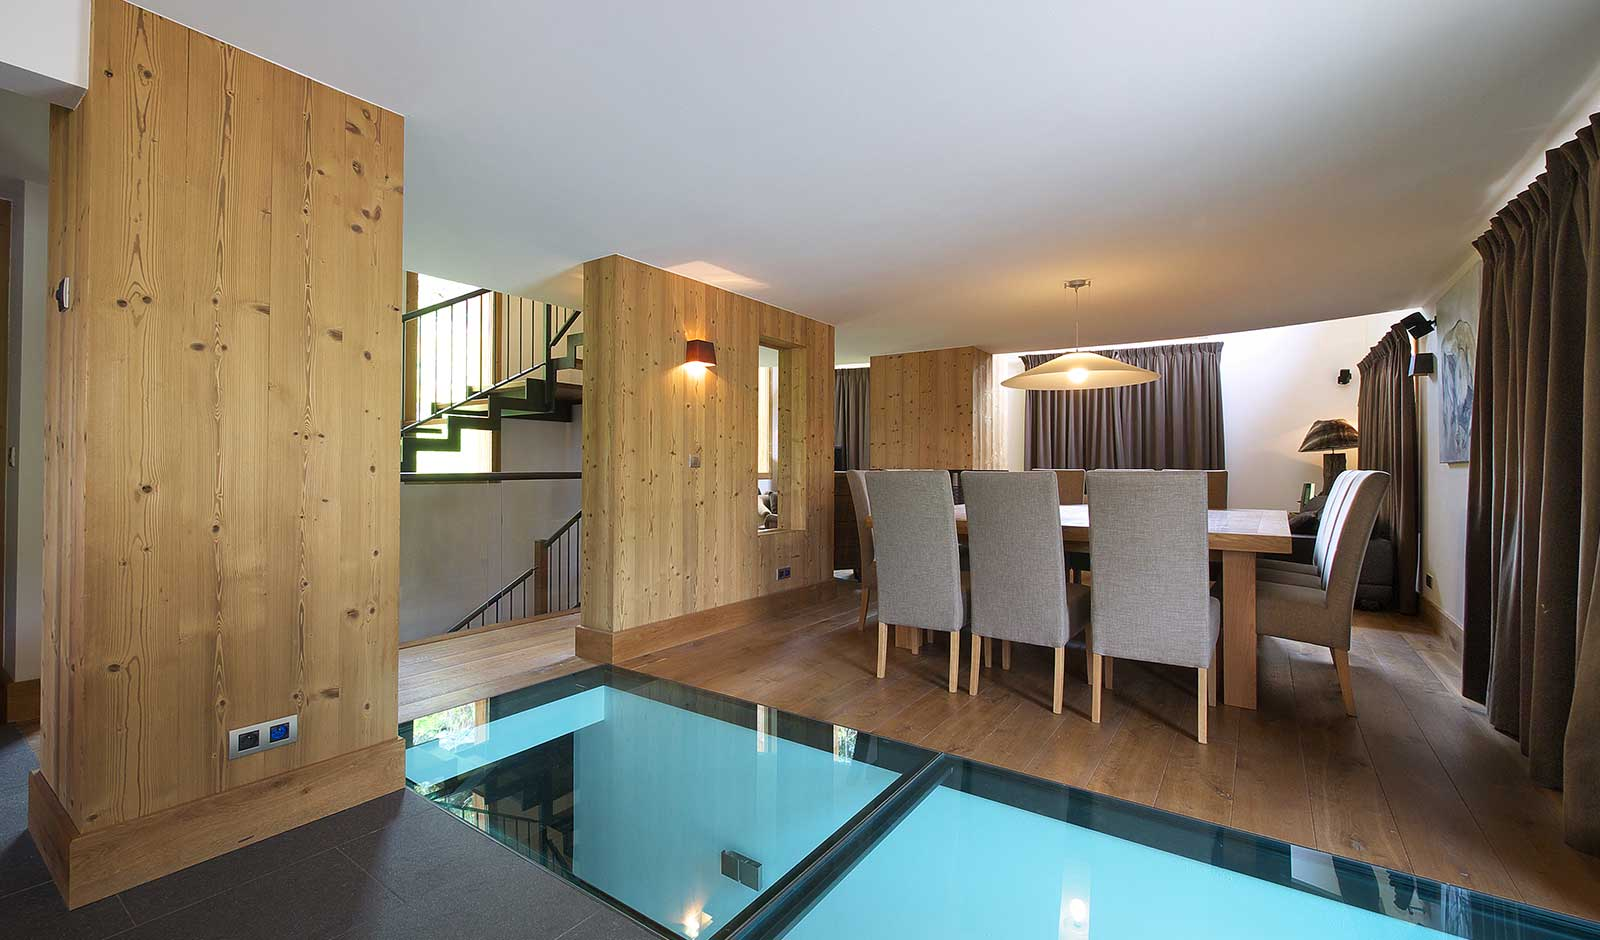 chalet-zybeline-9-atelier-crea-and-co-architecte-design-project-manager-meribel-savoie